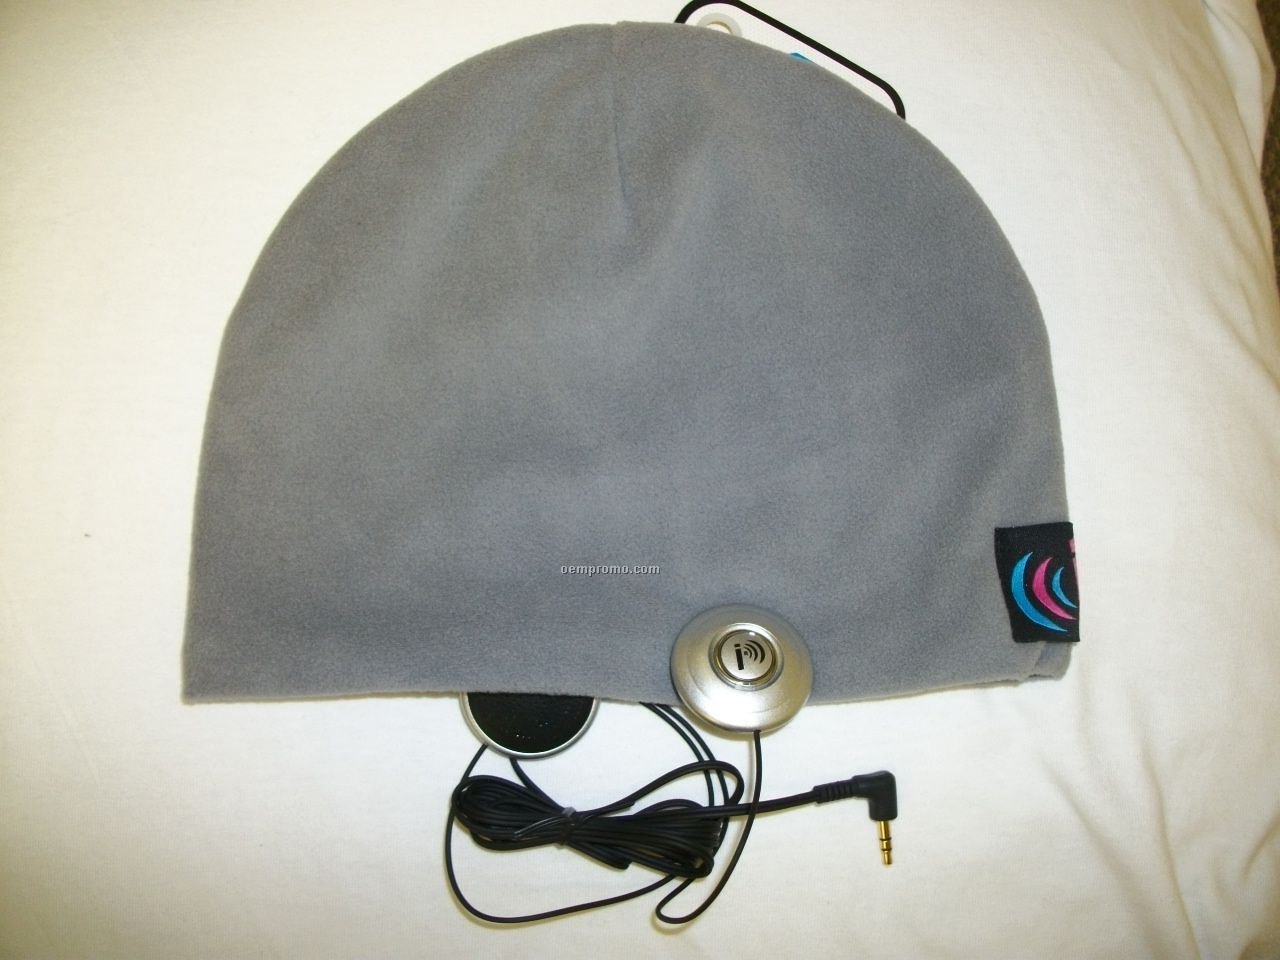 Micro Plush Fleece Ibeani Cap With Built-in Speakers